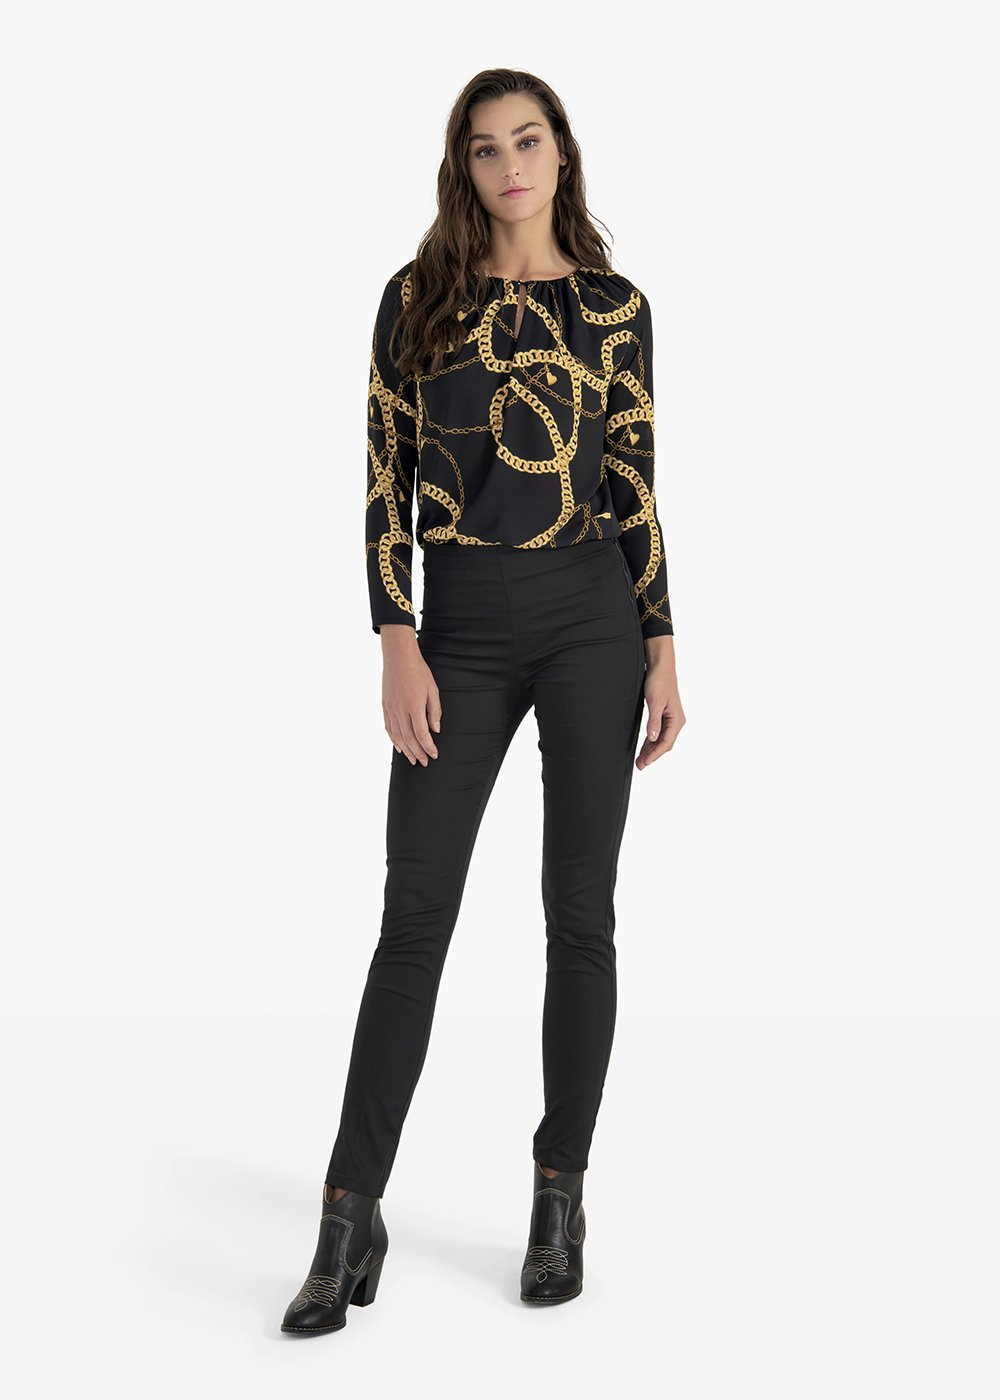 Susan T-shirt in double georgette with V-neck - Black / Miele Fantasia - Woman